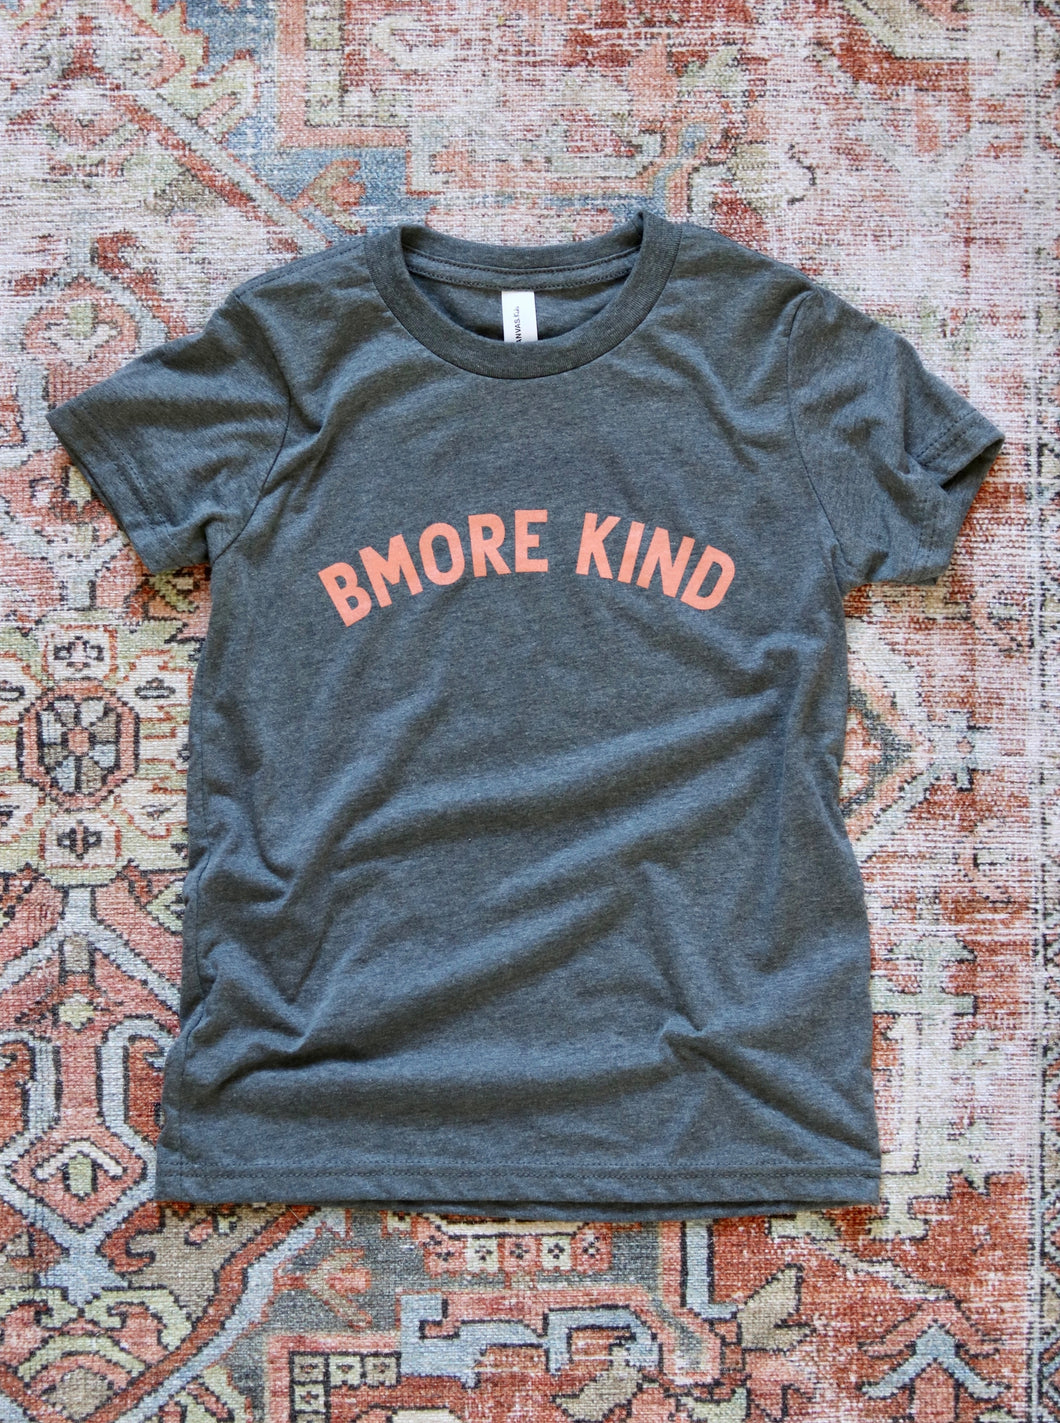 Bmore Kind Youth T-Shirt — Peach